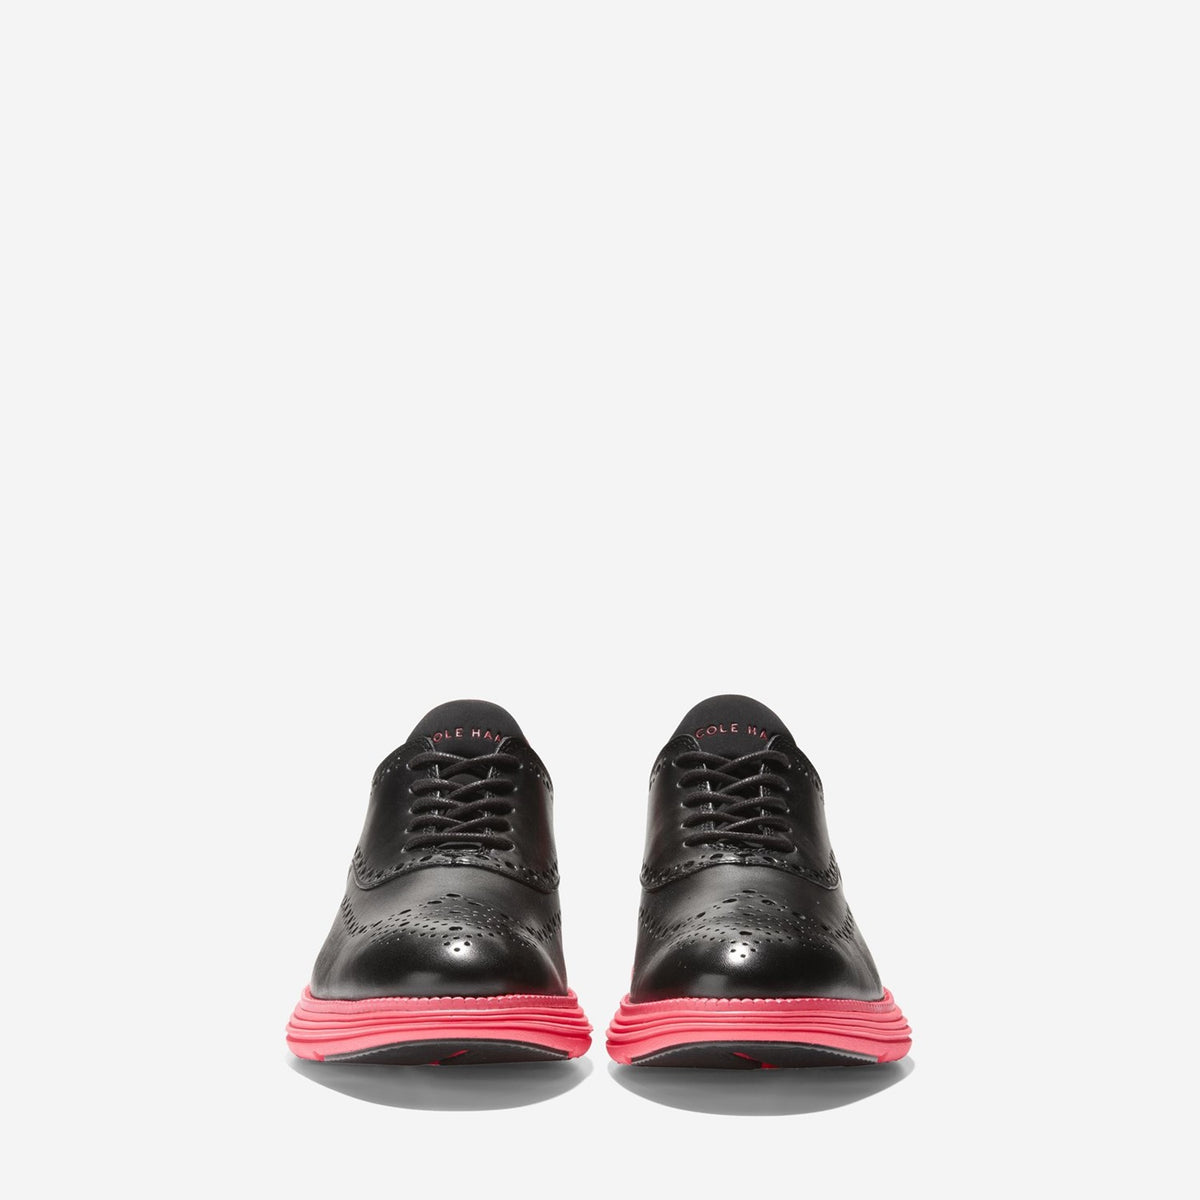 Men's STAPLE ØriginalGrand Ultra Wingtip Oxford Black/Pink